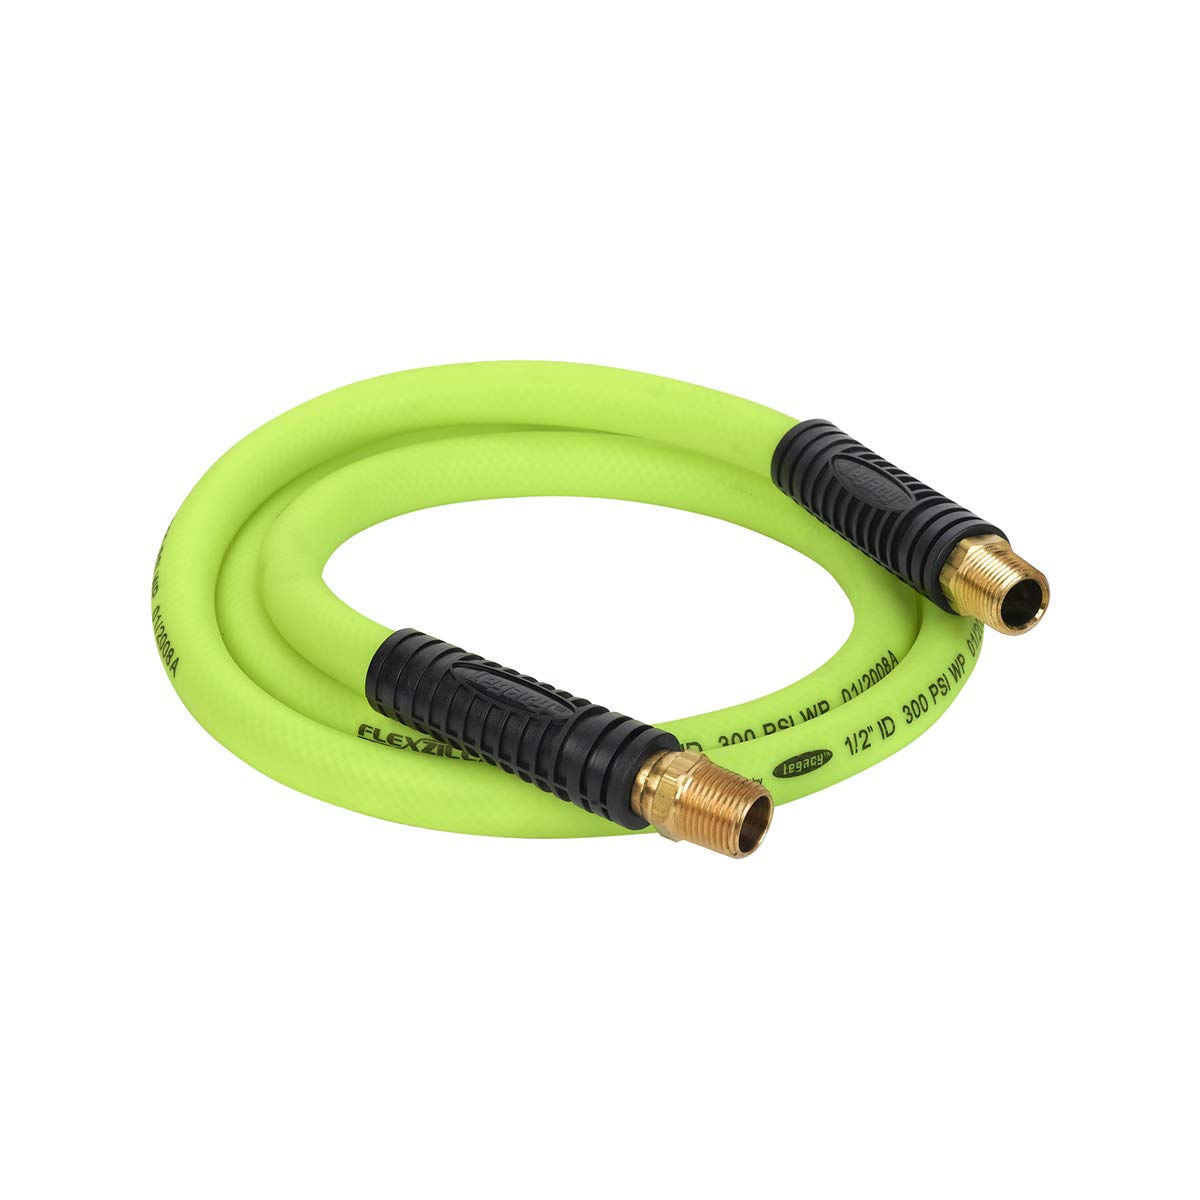 Manguera neumatica : Flexzilla Swivel Whip Air Hose 1/2 x 2m